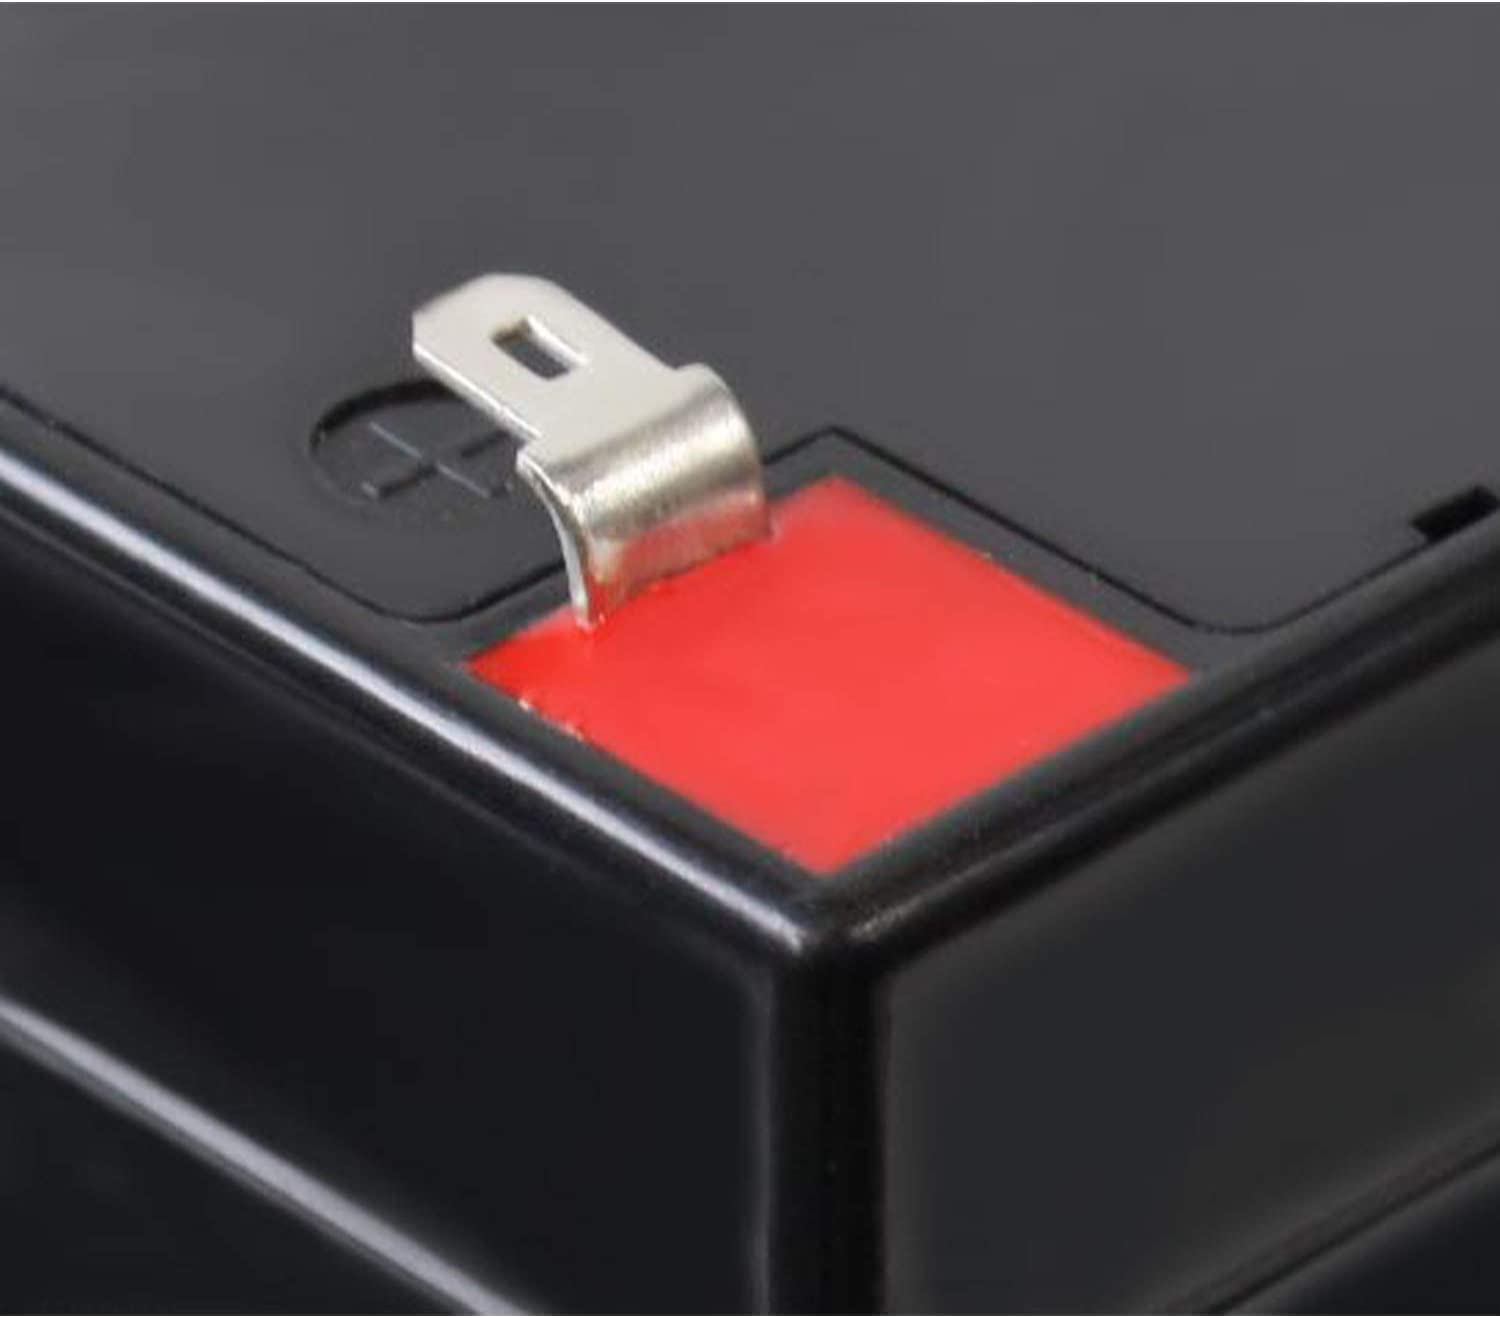 DIGITAL SECURITY POWER632 OPTION 2 12V 7AH REPLACEMENT ALARM BATTERY